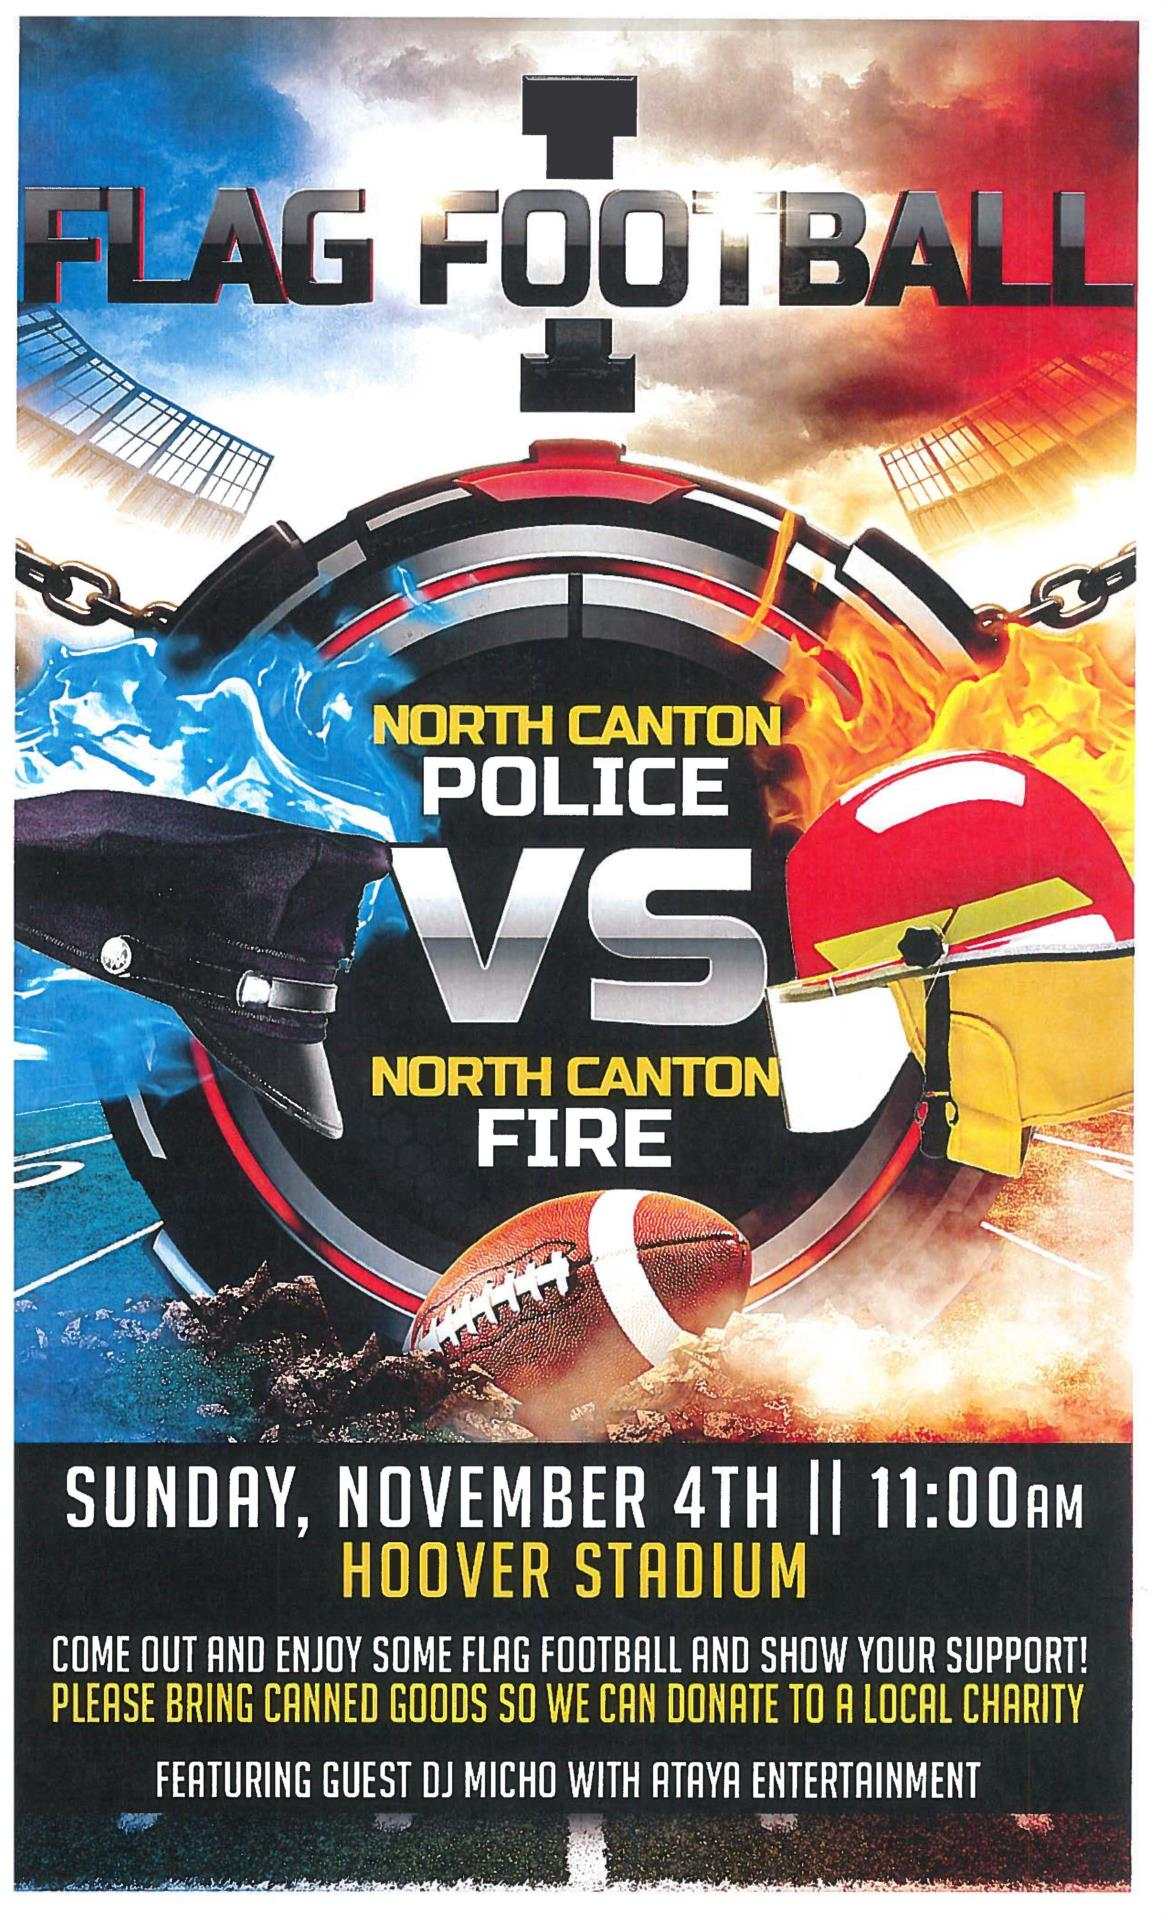 poster for flag football game between police and firemen